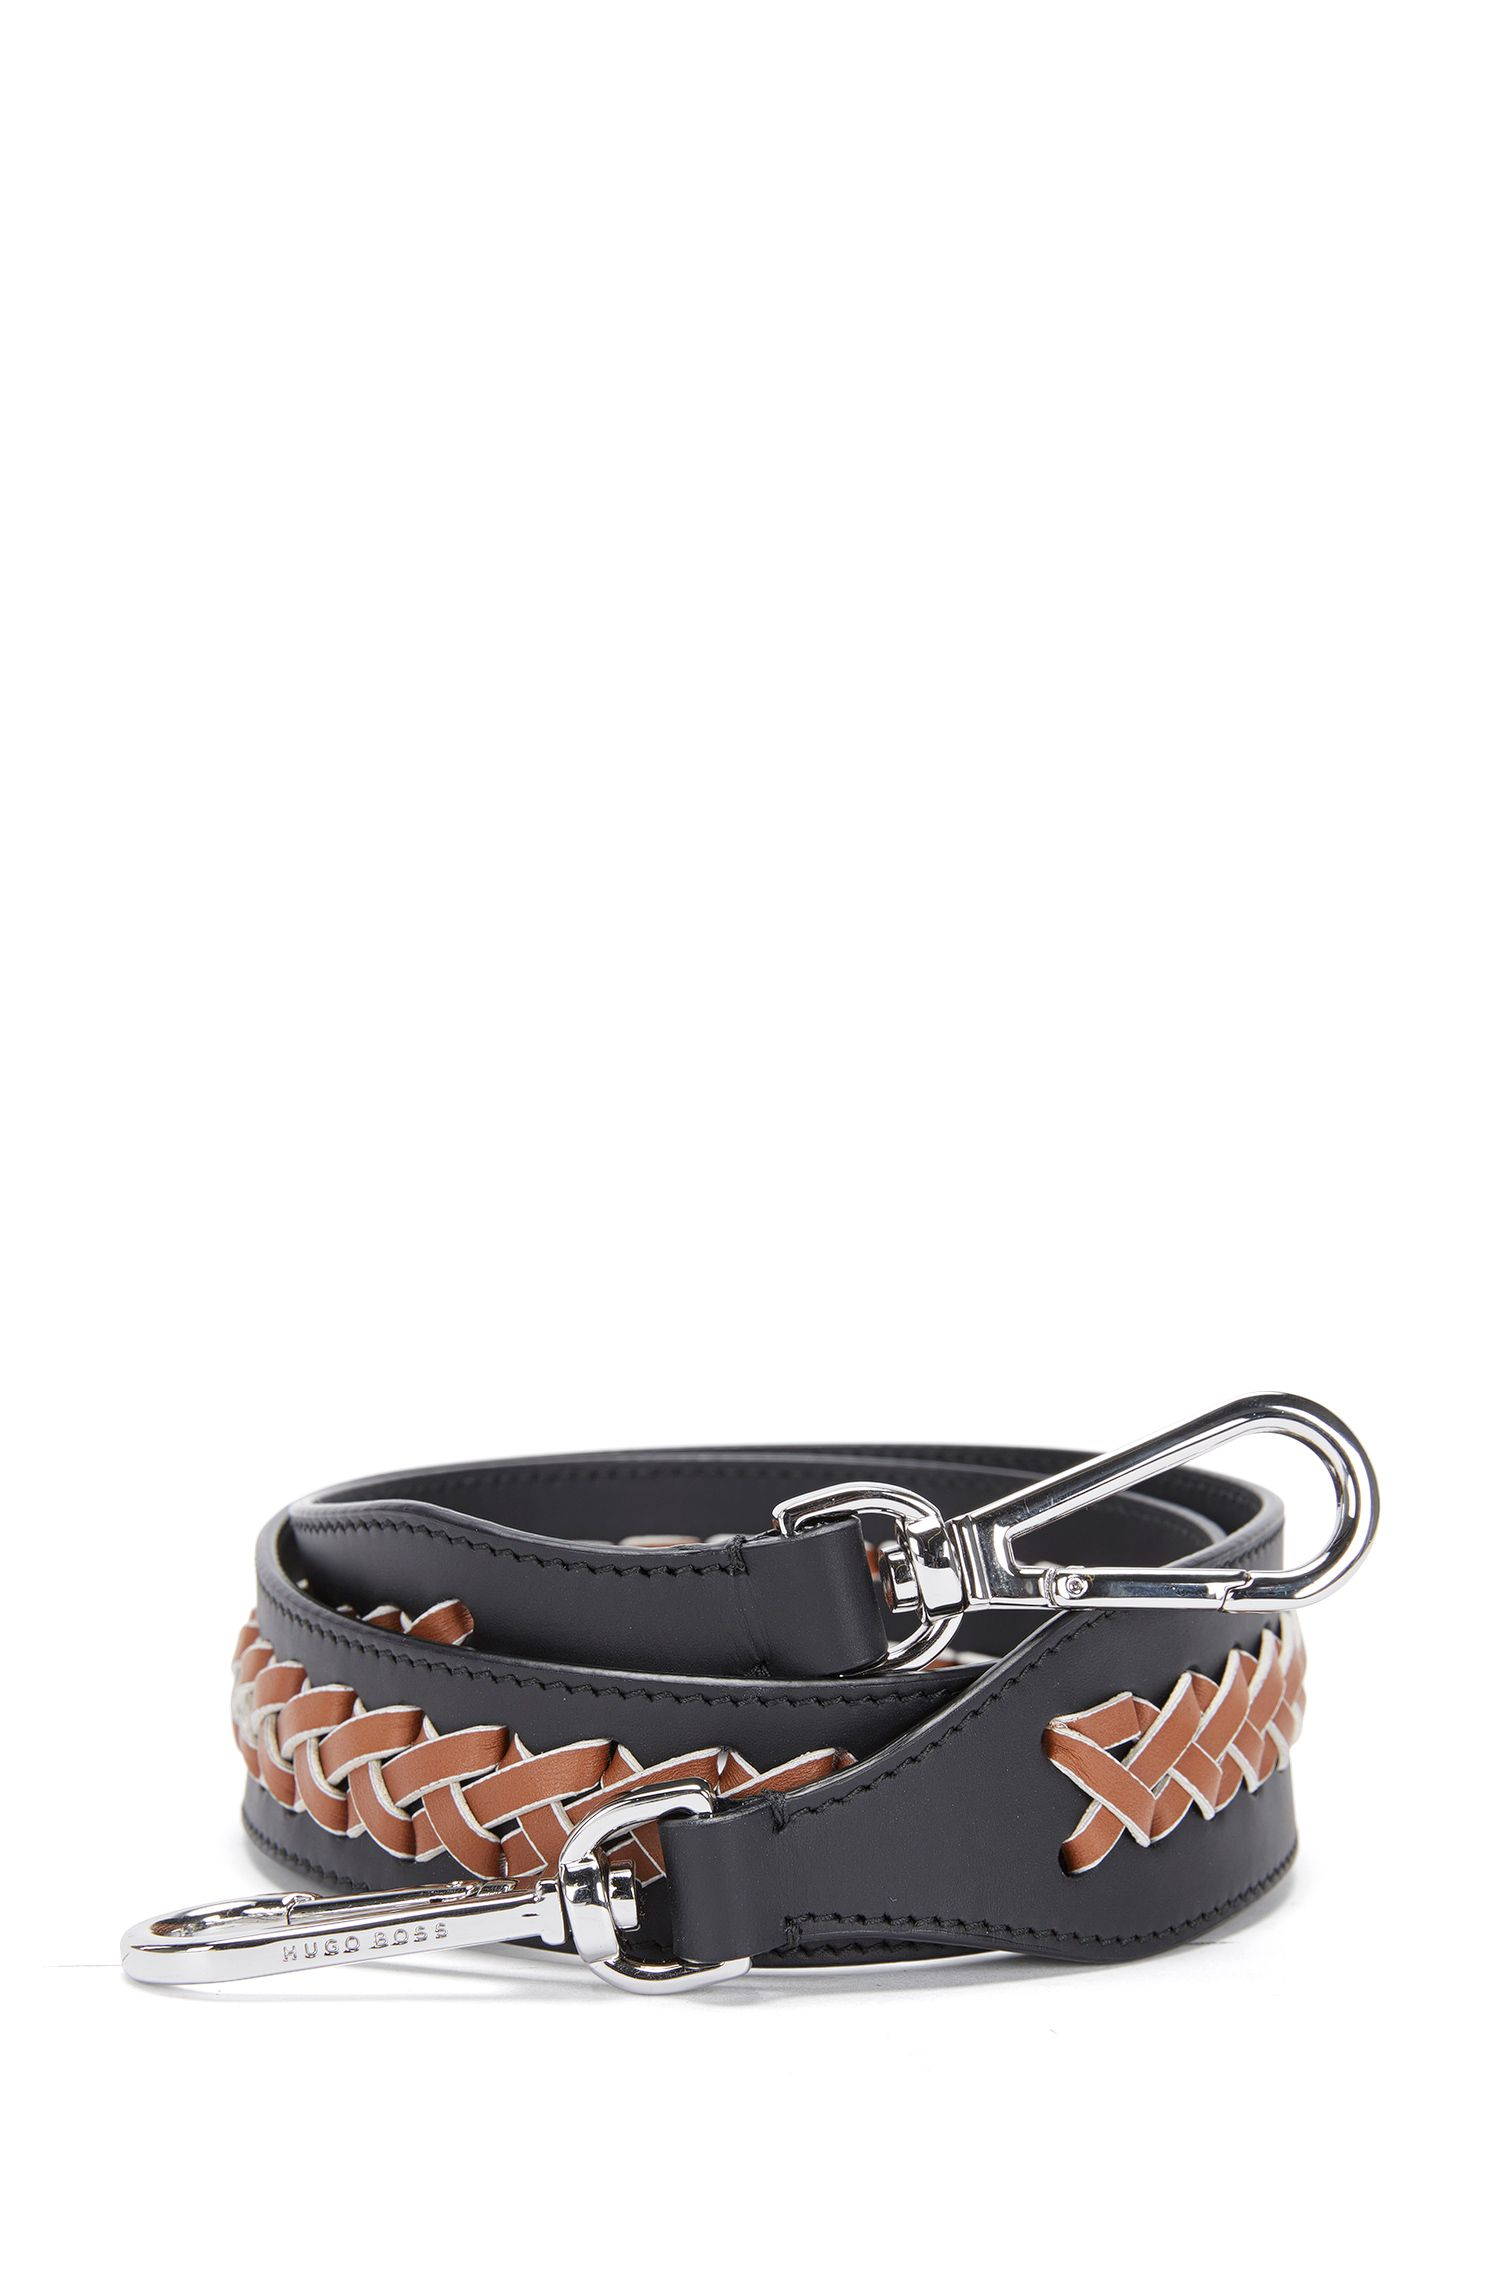 'Braid S Strap' | Calfskin Interchangeable Braided Handbag Strap